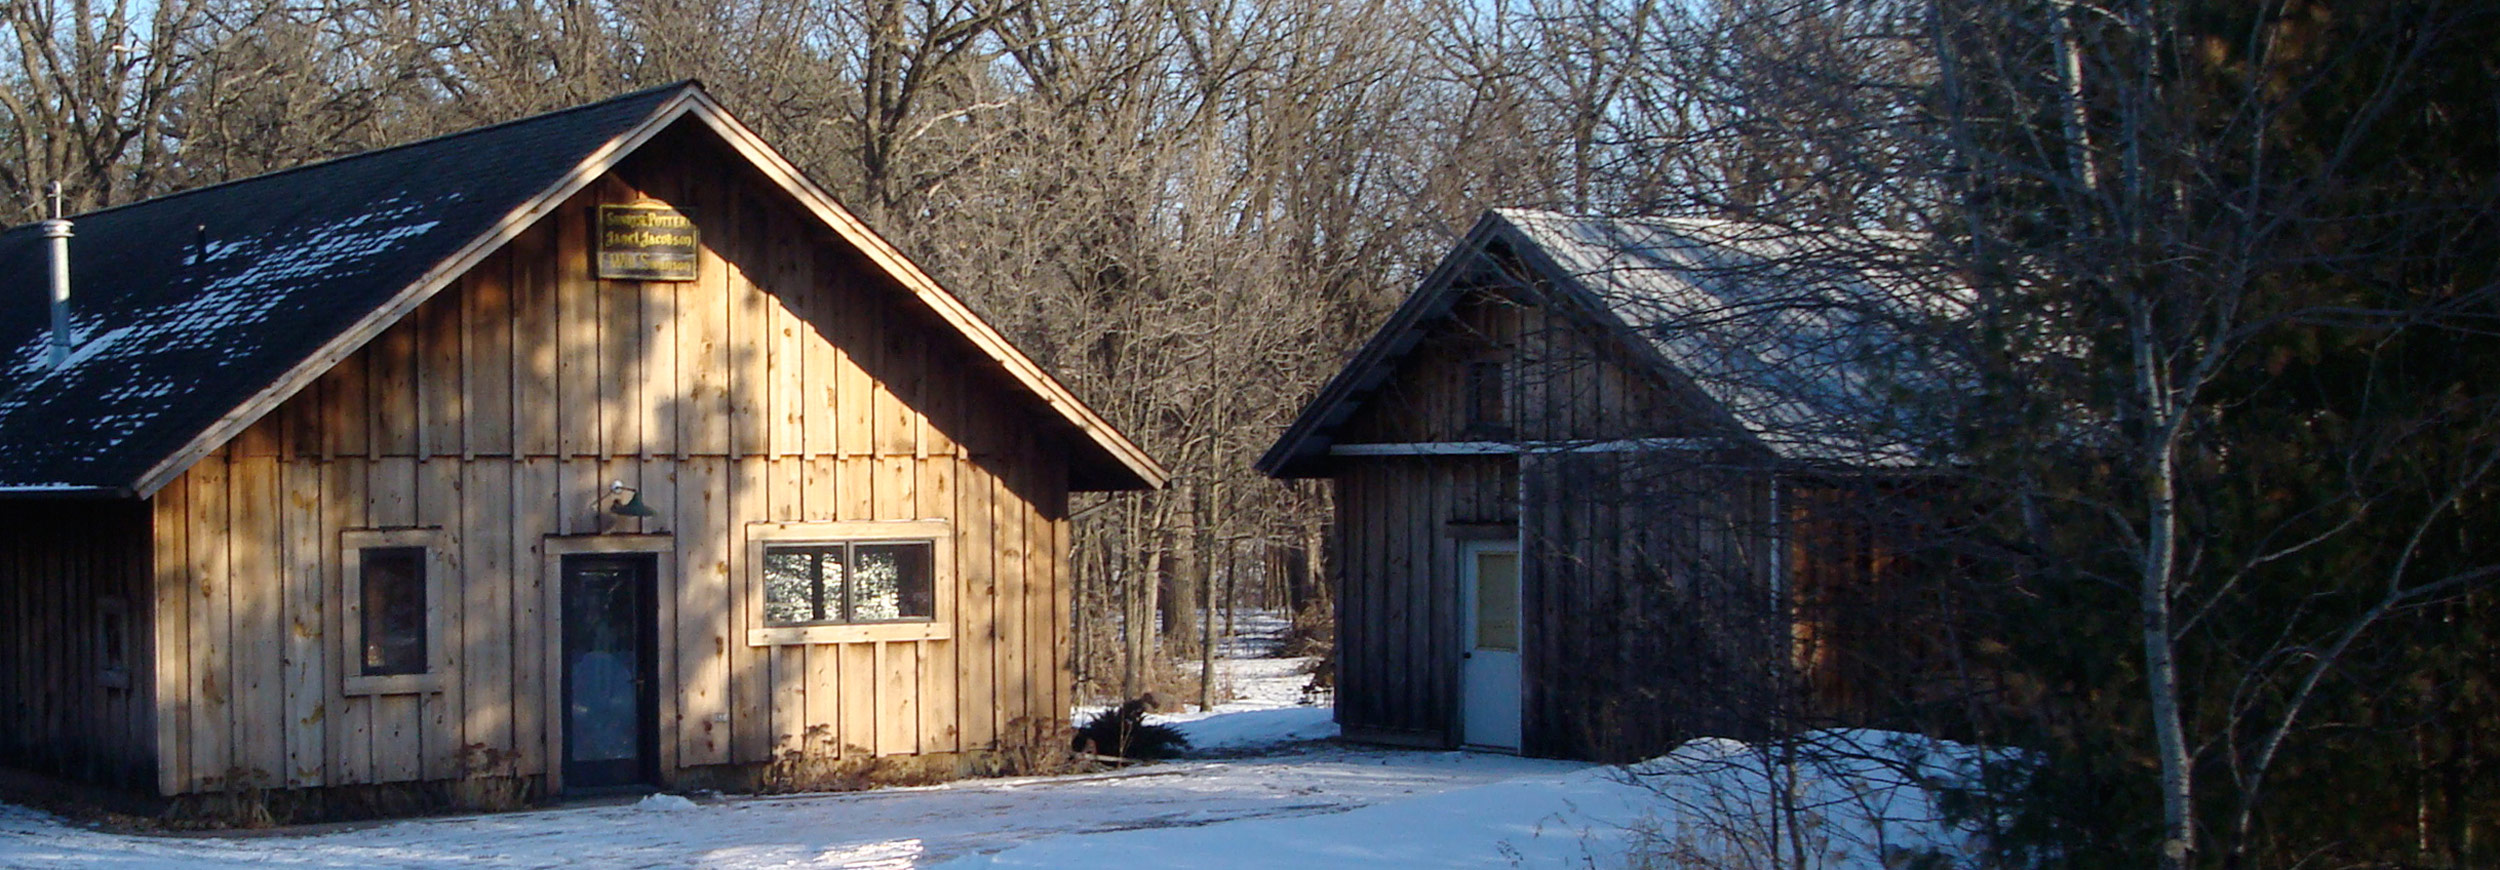 Sunrise Pottery Studio in Winter